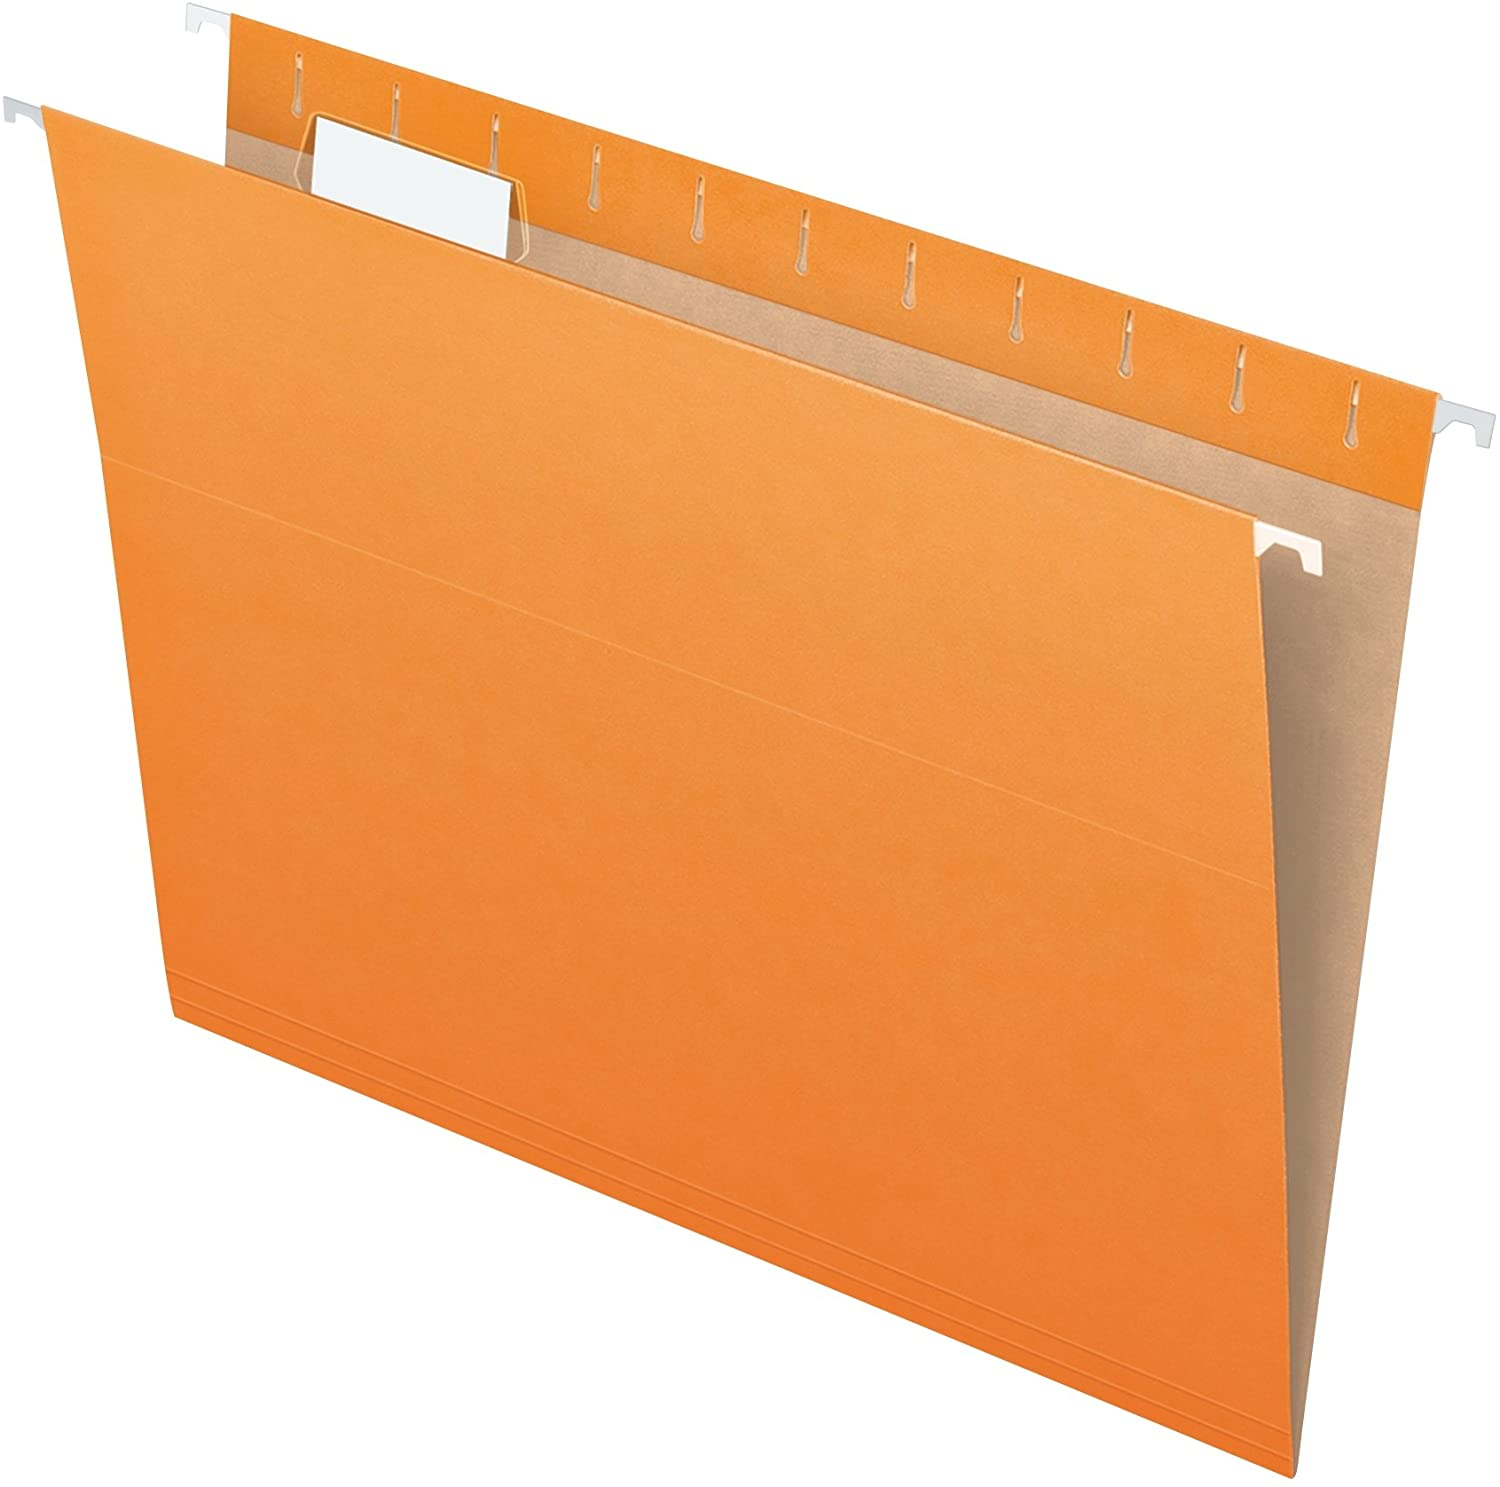 Pendaflex Recycled Challenge the lowest price Hanging Folders Letter Orange Cut Size 5 1 Large special price !!